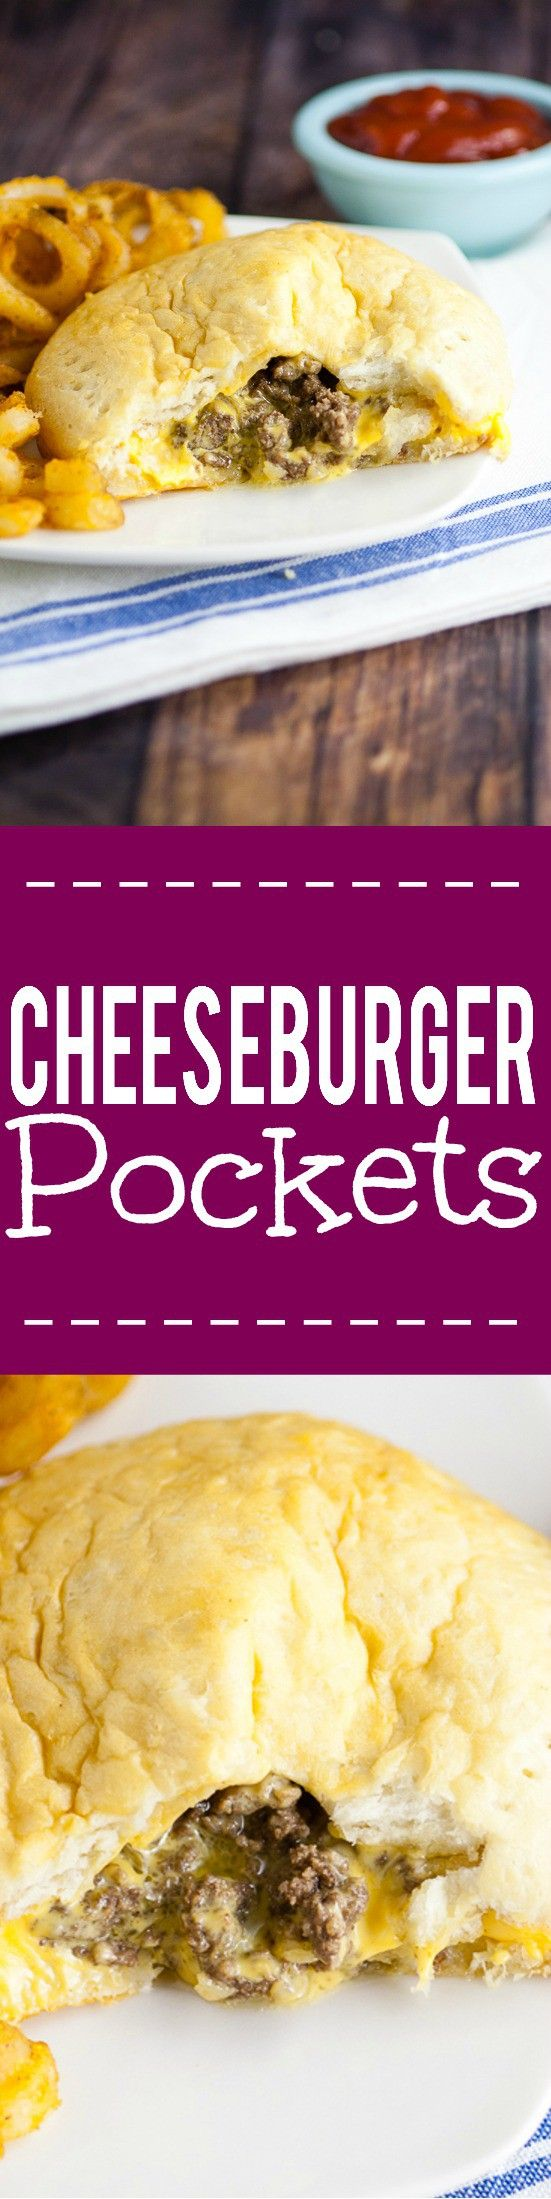 5115 best dinner recipes images on pinterest cooking food cooking cheesburger pockets recipe made in just 30 minutes with 5 ingredients this cheesy cheeseburger pockets recipe is the ultimate yummy quick and easy forumfinder Images